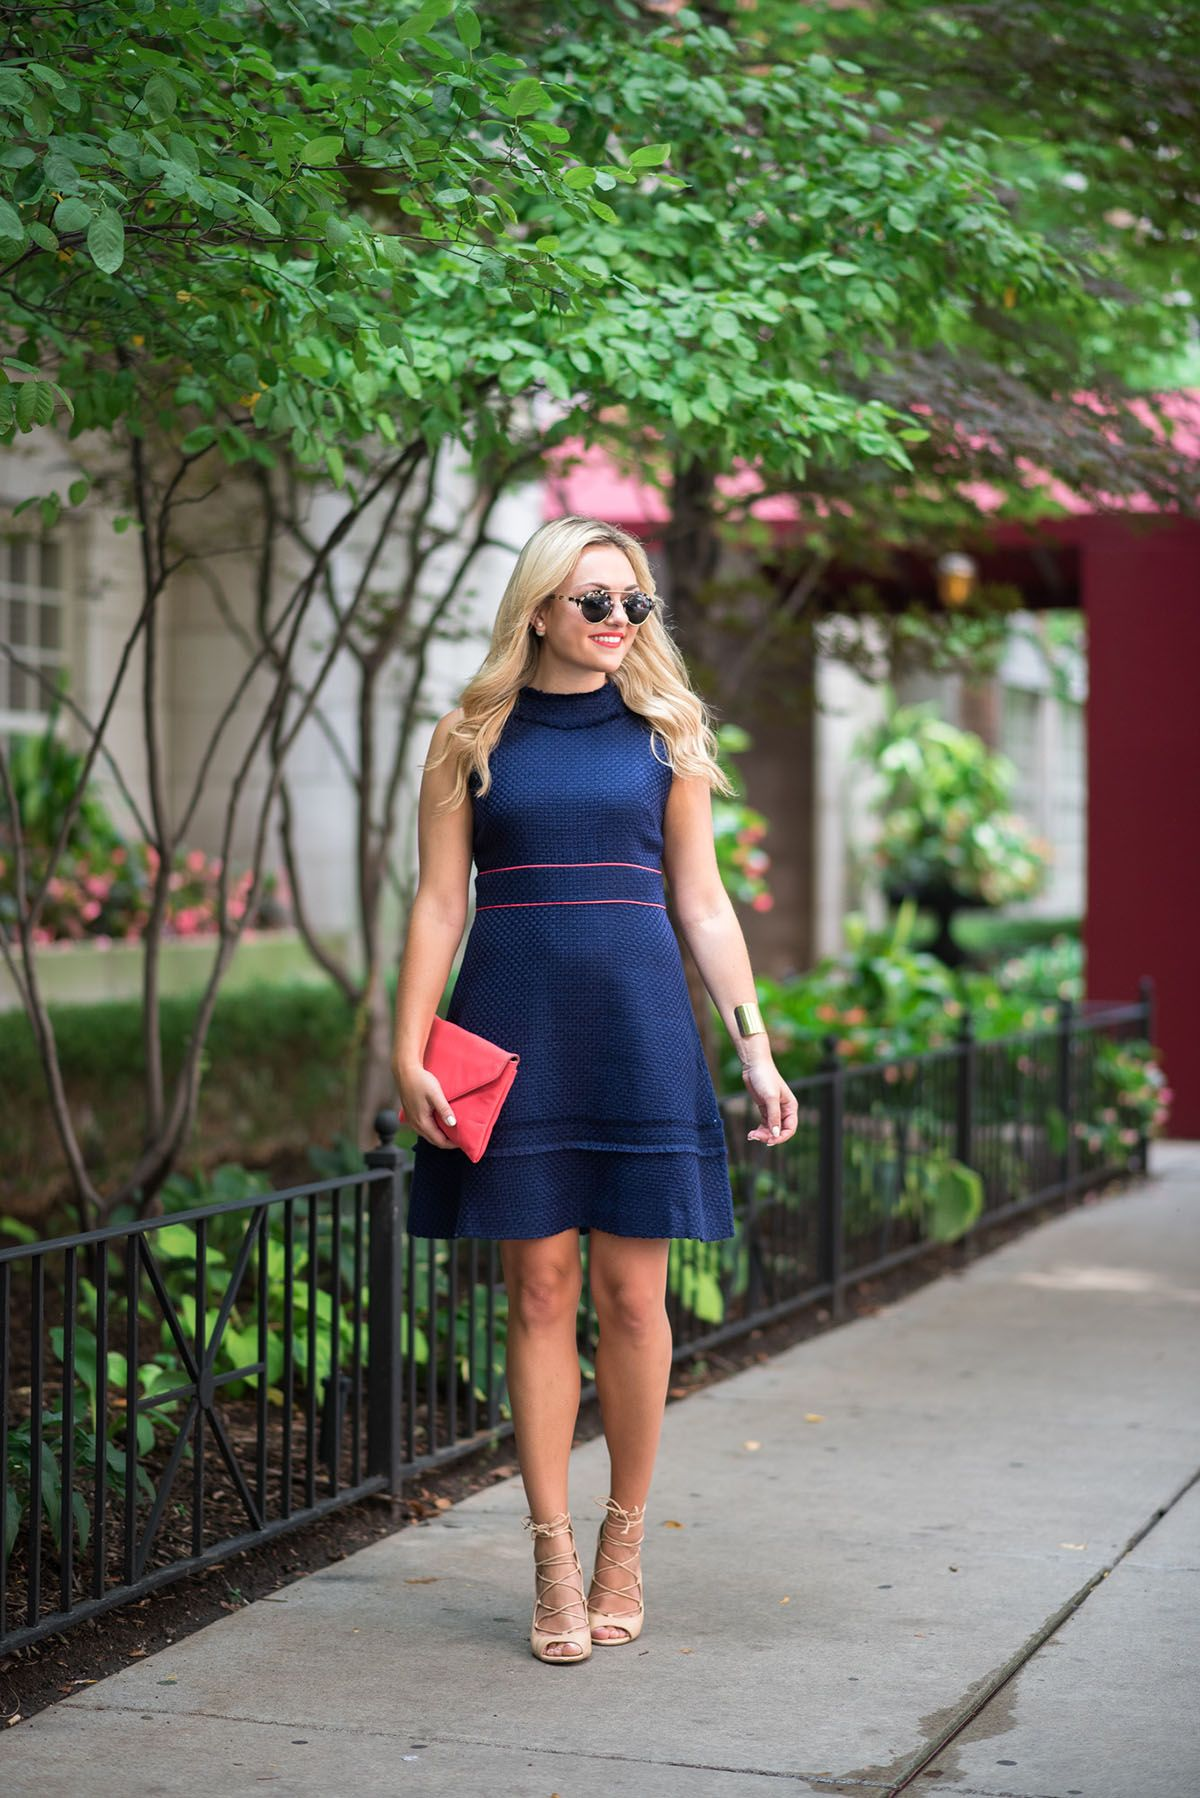 d45b48094d68 Fashion blogger Bows   Sequins wearing a navy blue and coral dress,  sunglasses, and coral clutch in Chicago.